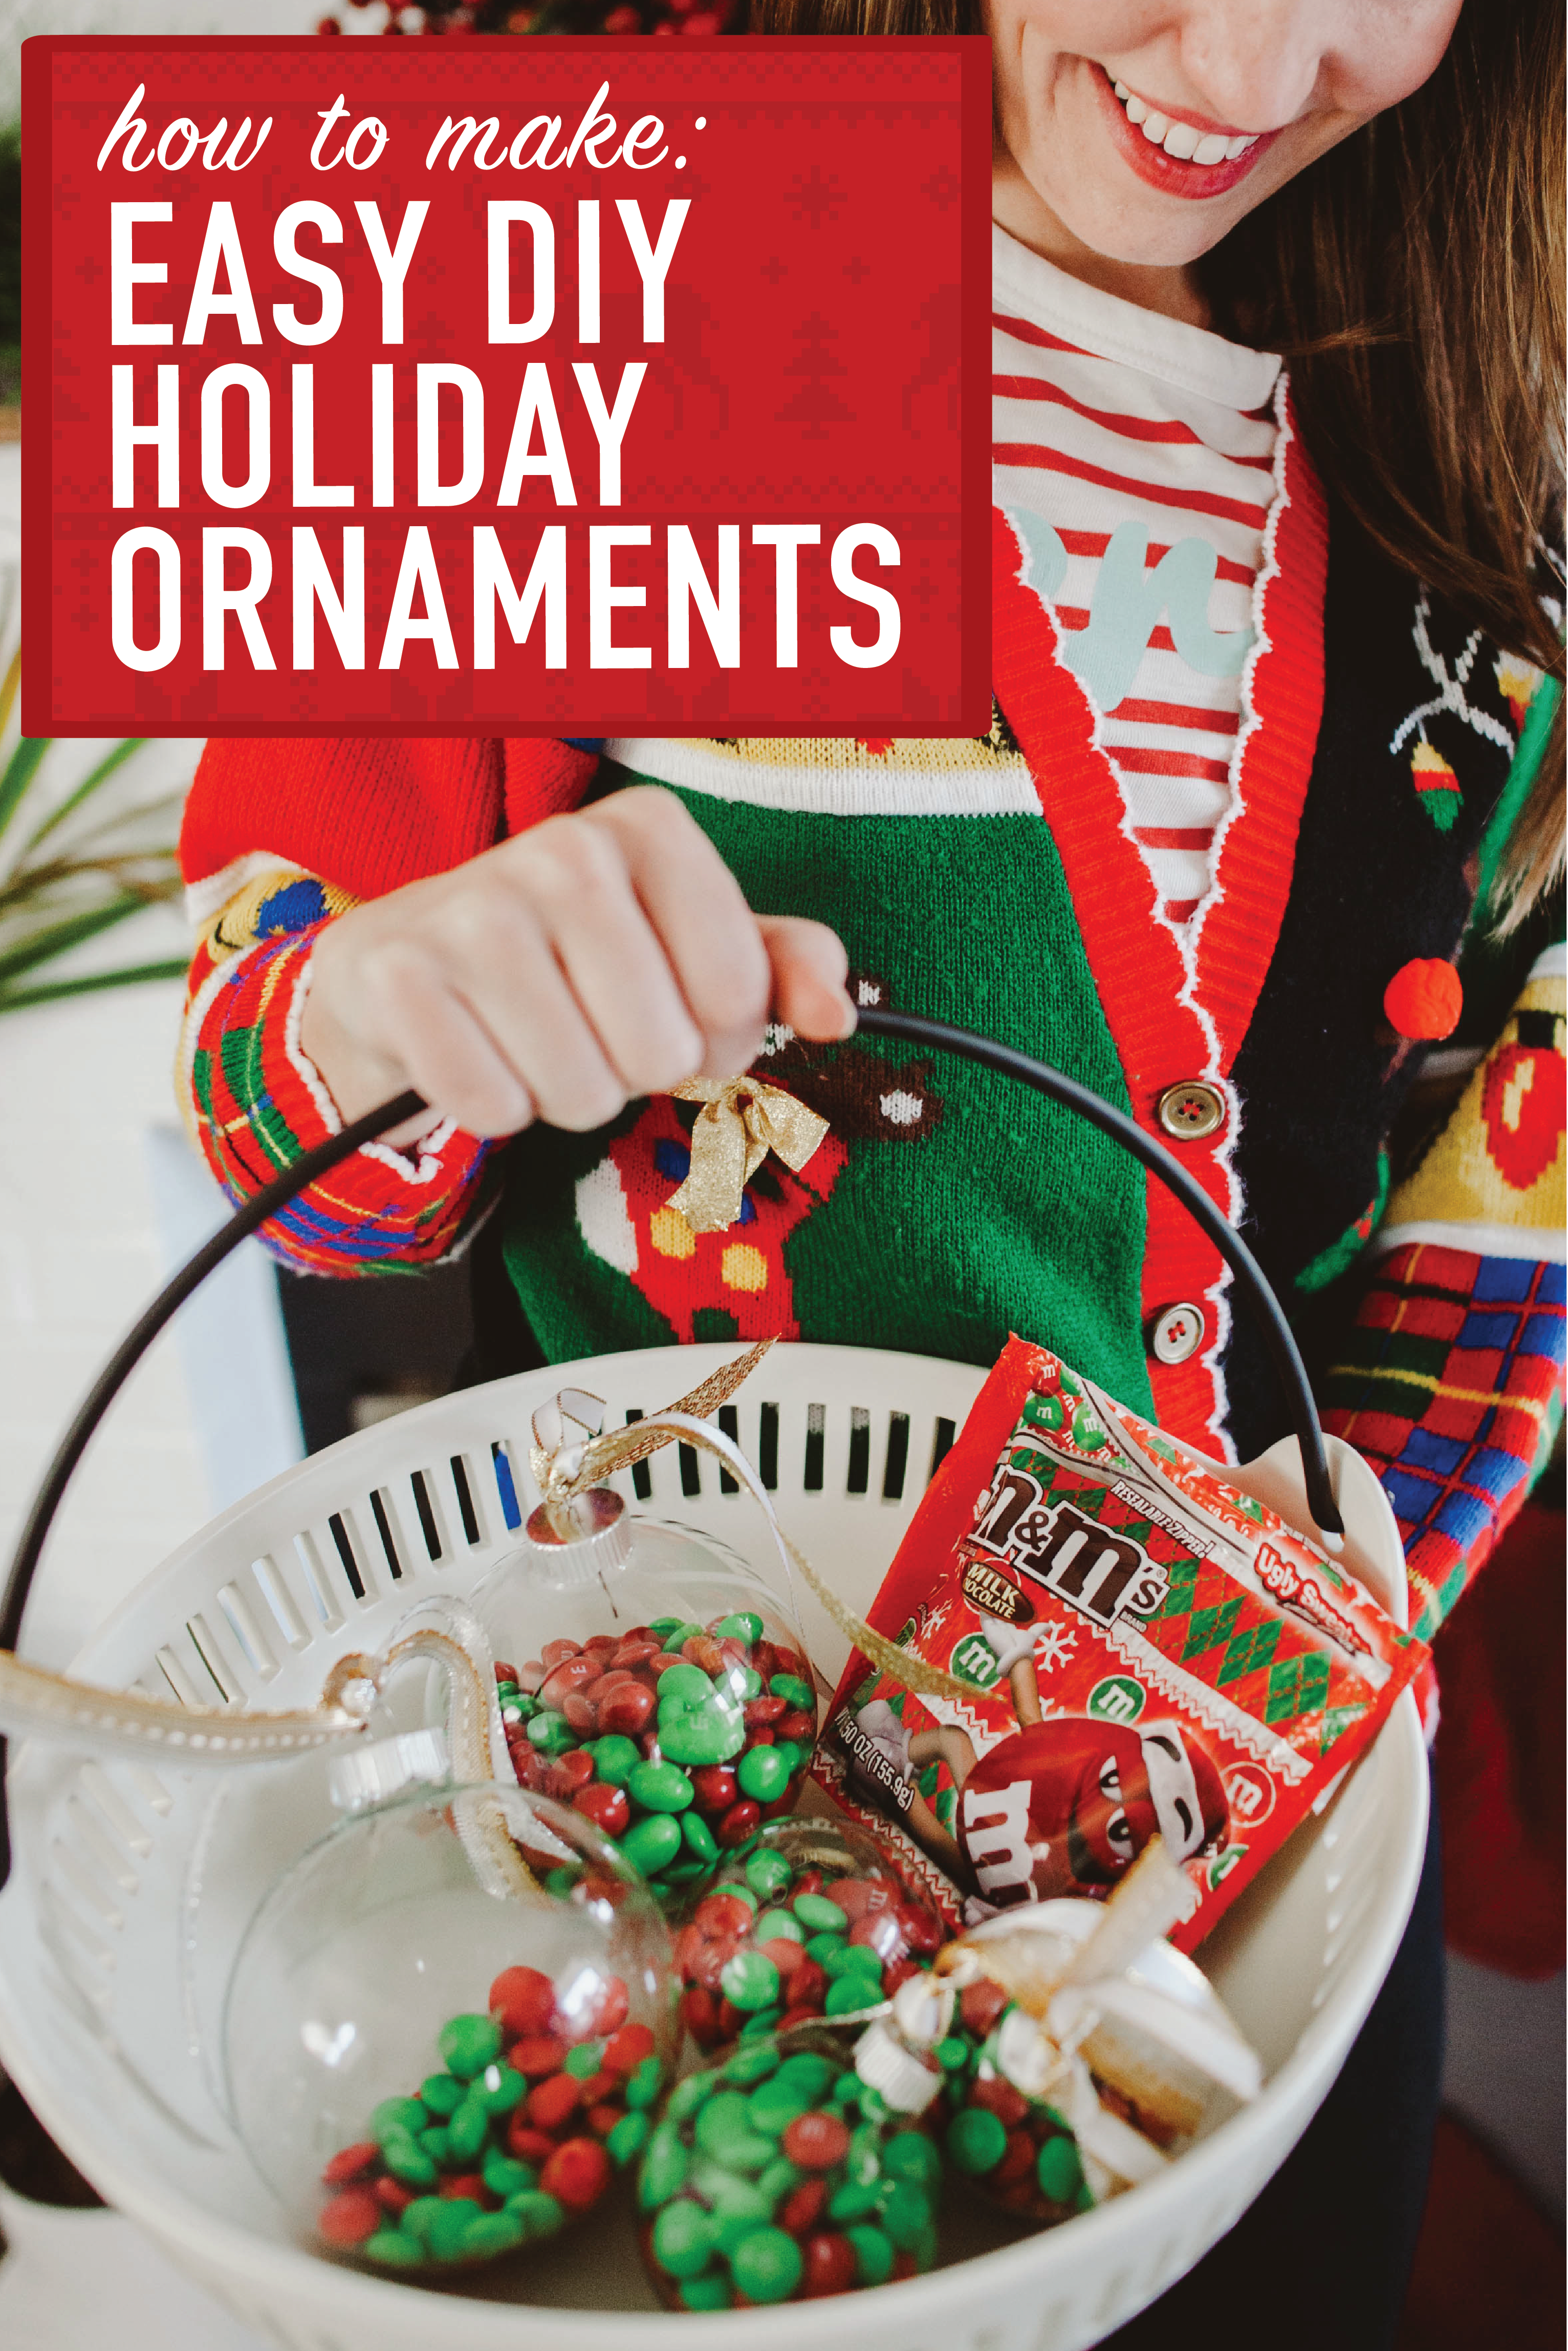 DIY M&Ms Ornaments | Ugly Sweater | Pinterest | King soopers ...